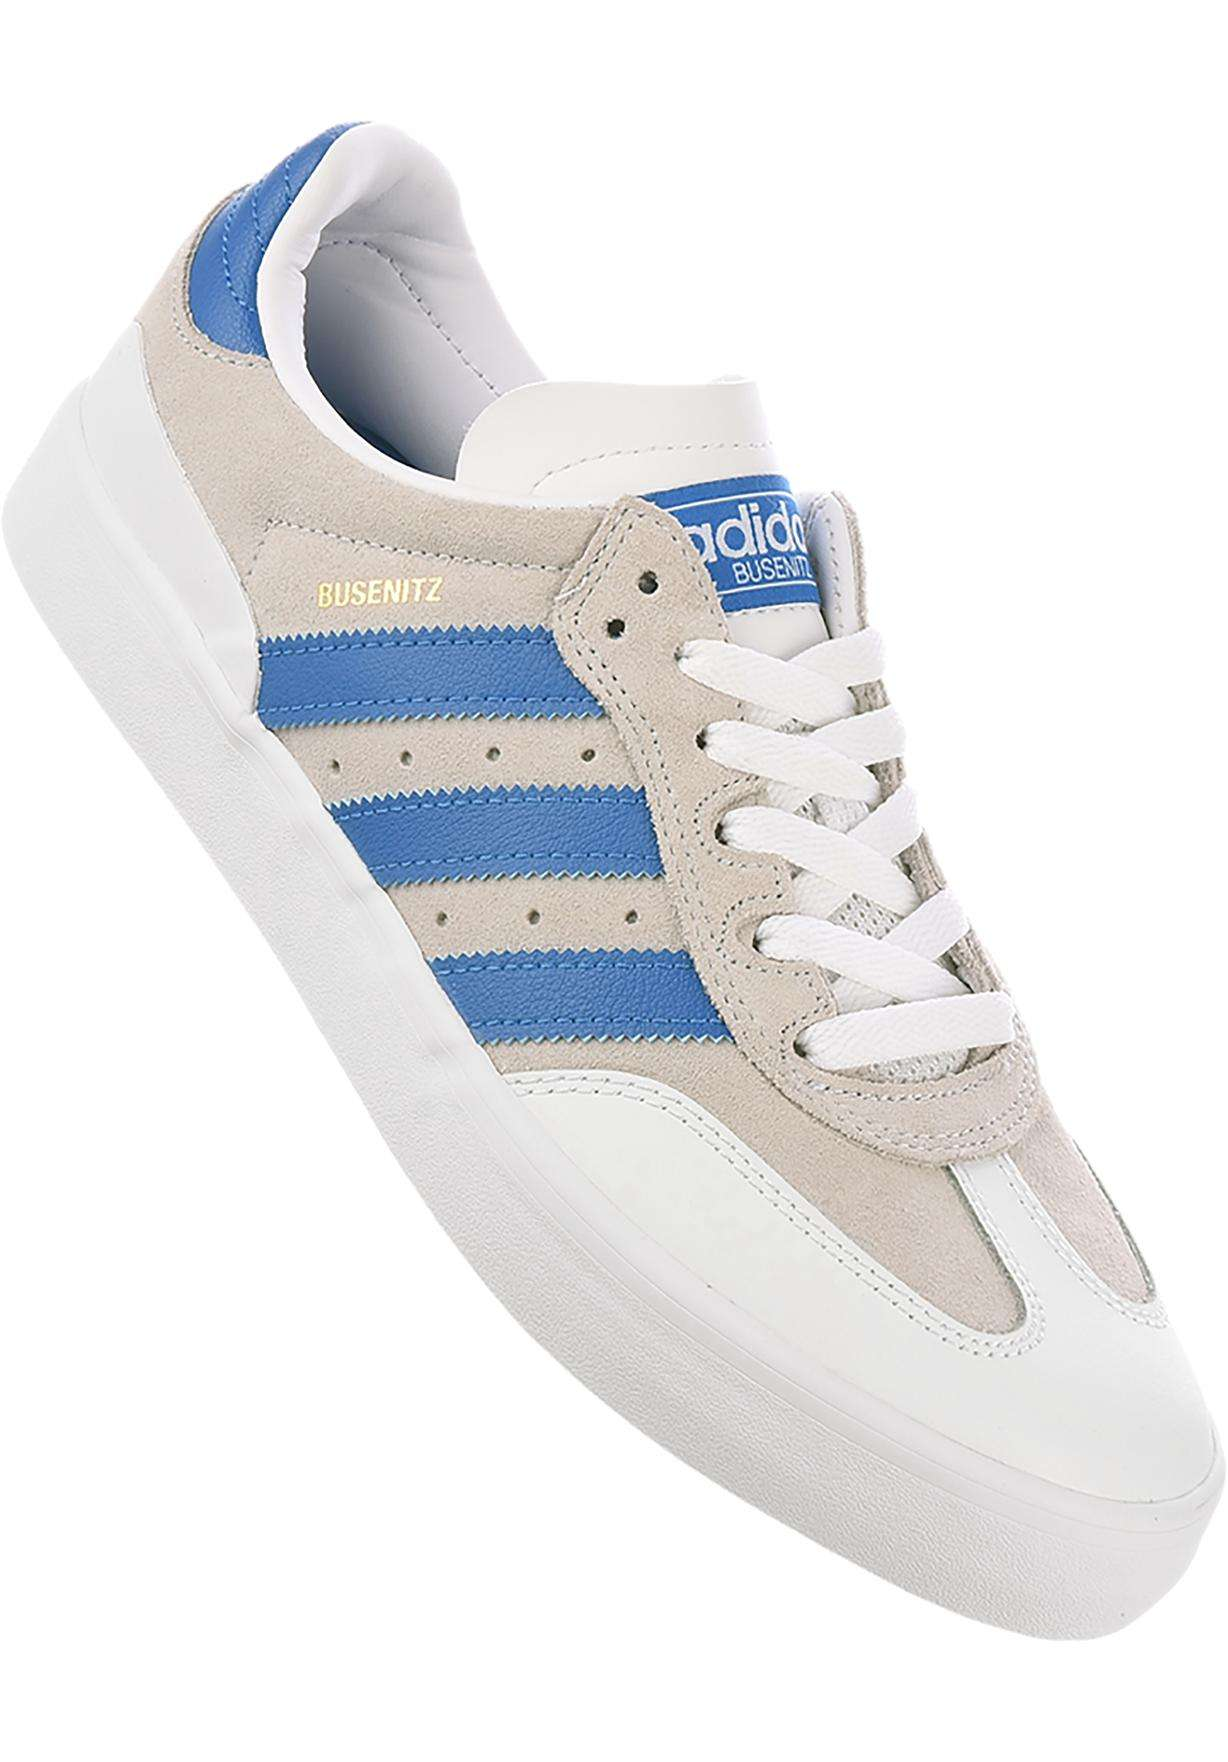 brand new 34d38 39305 Busenitz Vulc RX adidas-skateboarding All Shoes in crystalwhite-bluebird  for Men   Titus